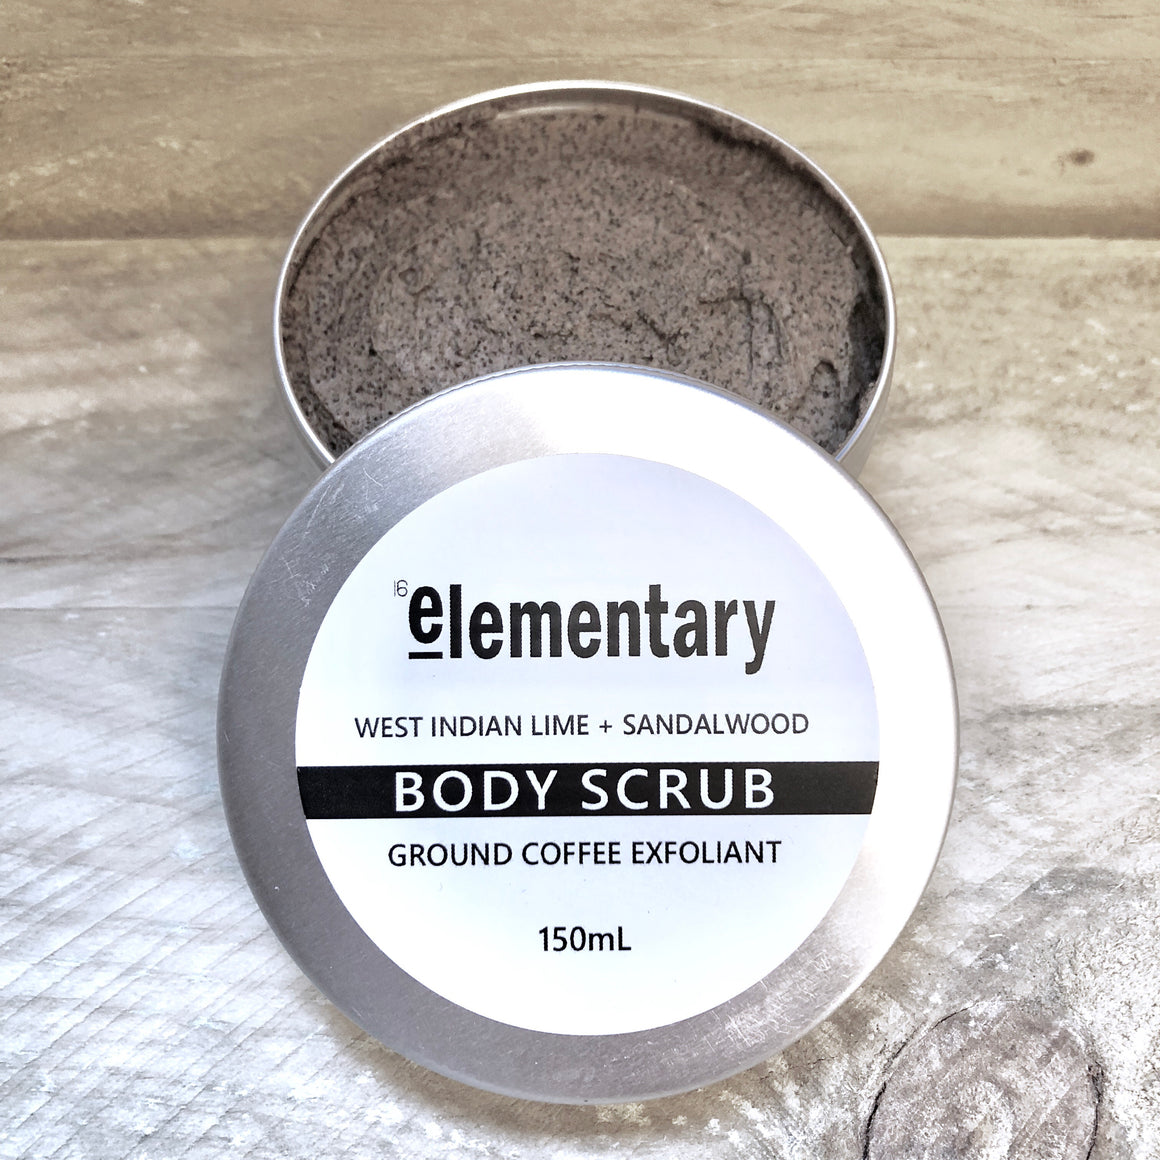 EXFOLIATING SCRUB | Real Ground Coffee & West Indian Lime - KISS Skin Care | Australia, Scrubs & Exfoliants